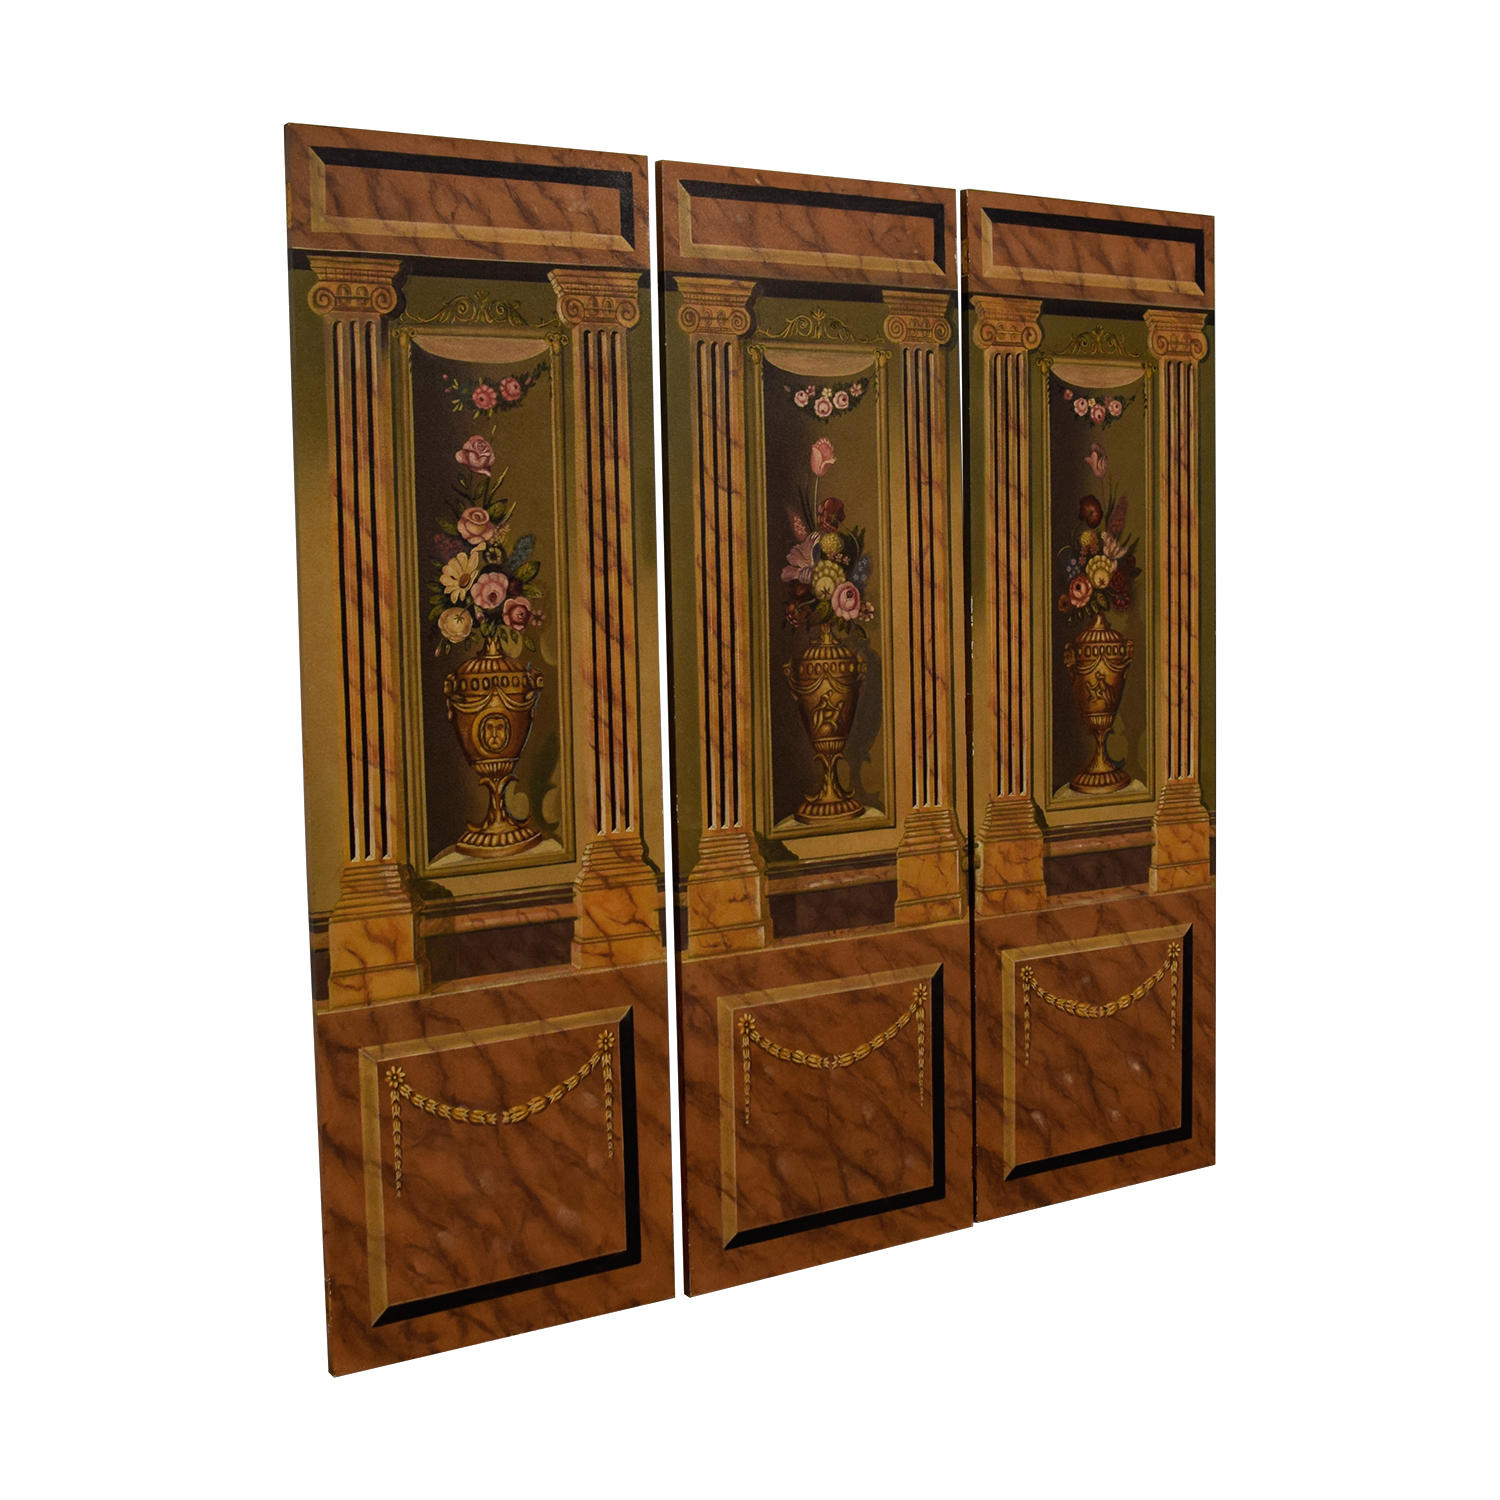 buy Maitland-Smith Maitland-Smith Hand Painted Three-Panel Screen online